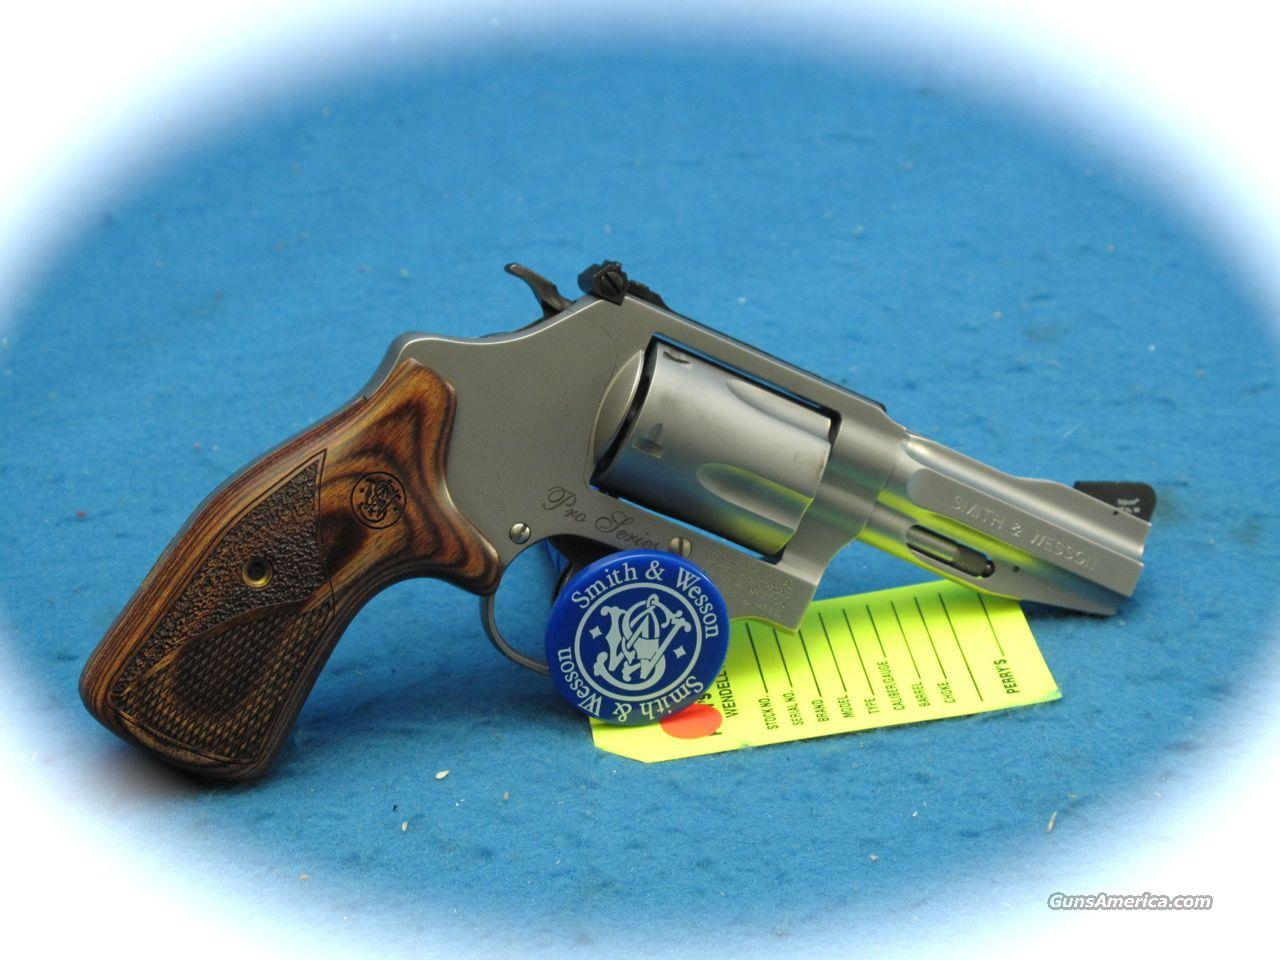 Smith & Wesson Model 60-15 Pro Series 357 Mag Revolver **Like New**  Guns > Pistols > Smith & Wesson Revolvers > Pocket Pistols